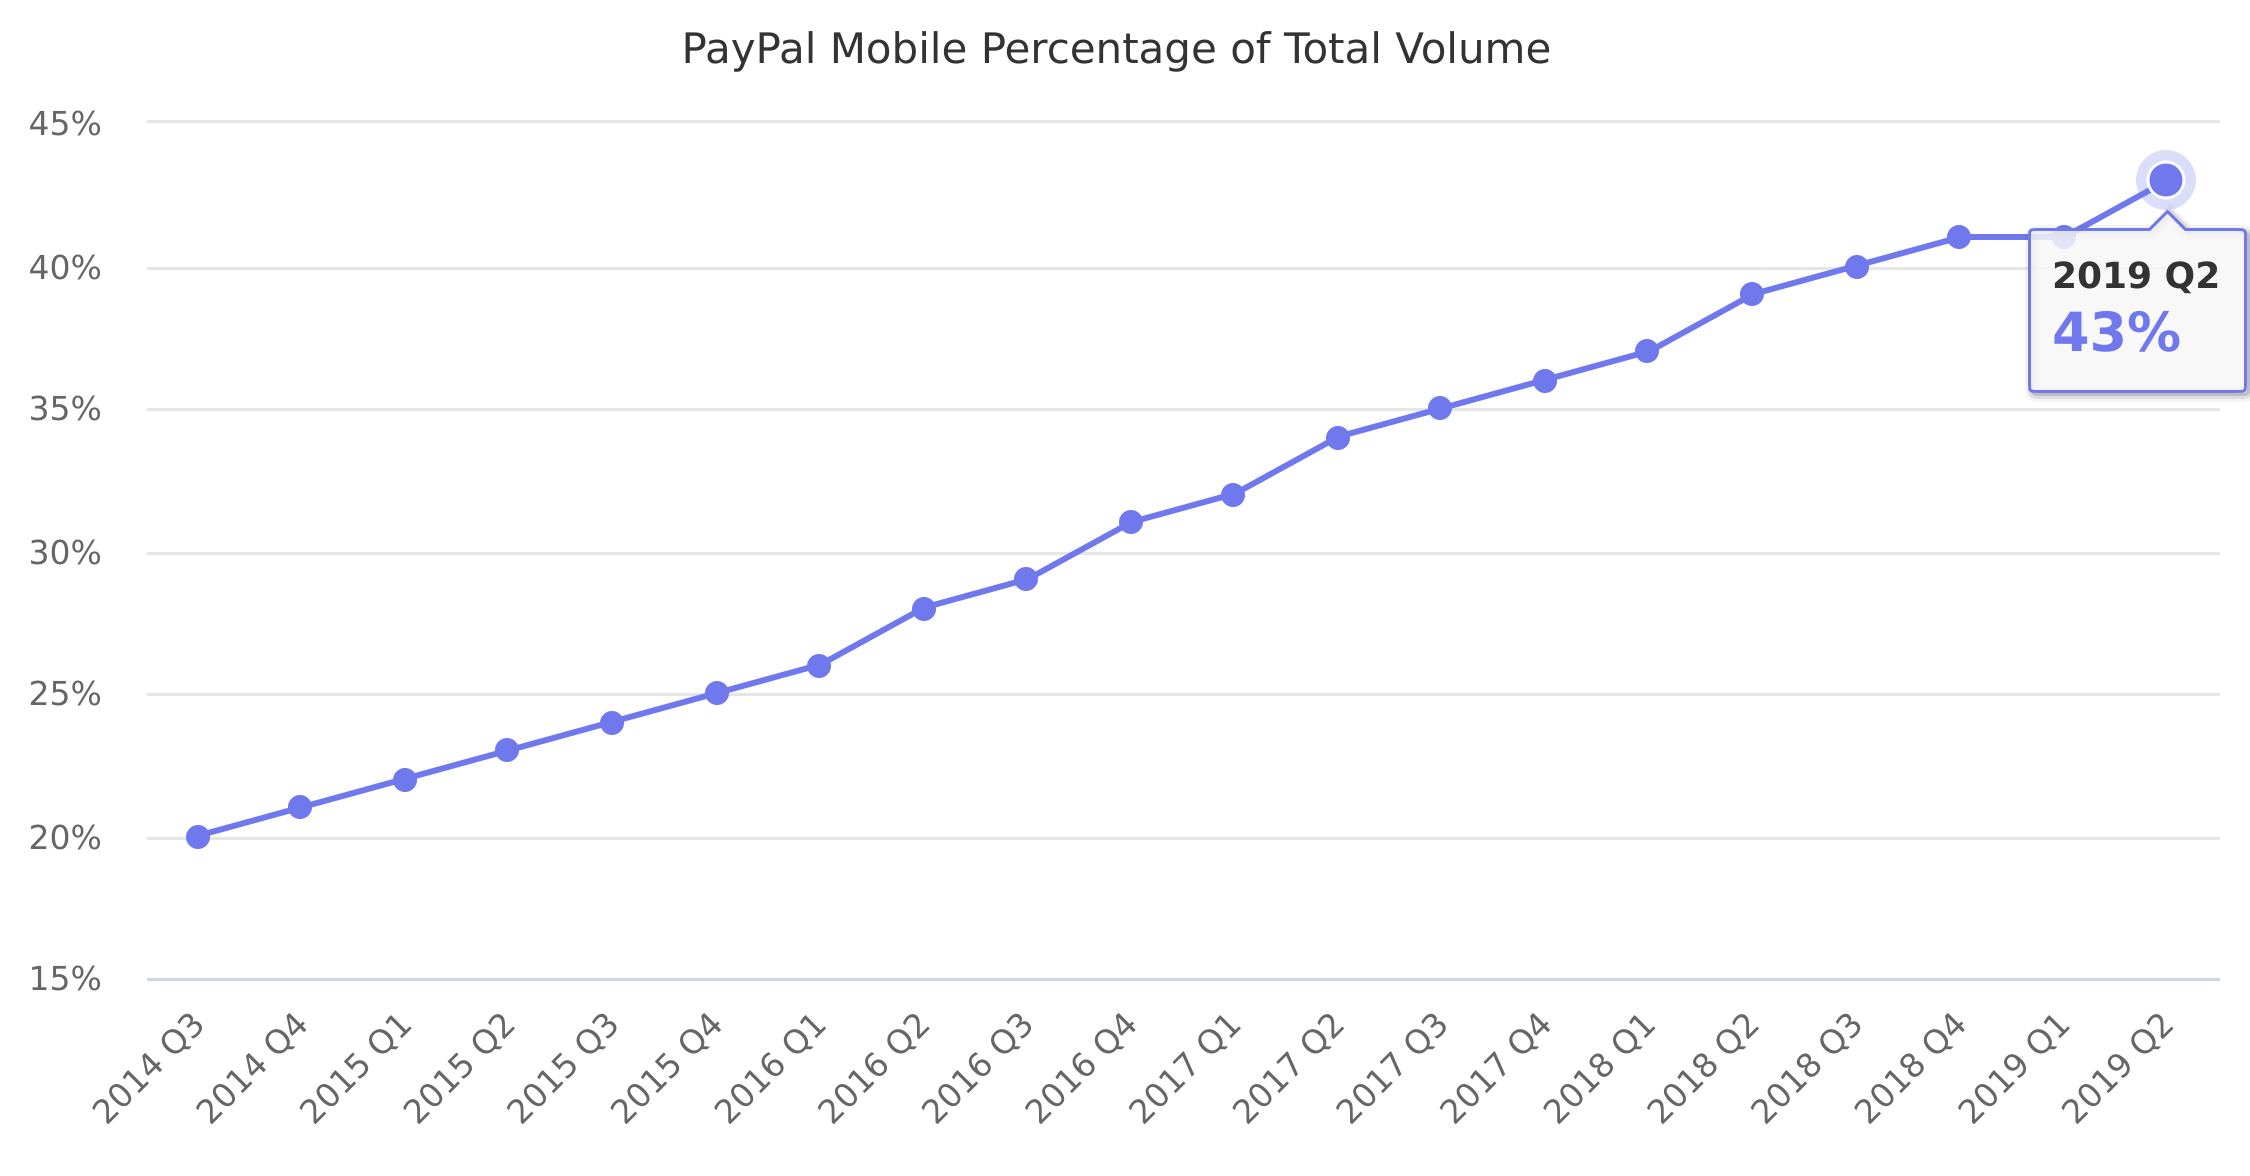 PayPal Mobile Percentage of Total Volume 2014-2019